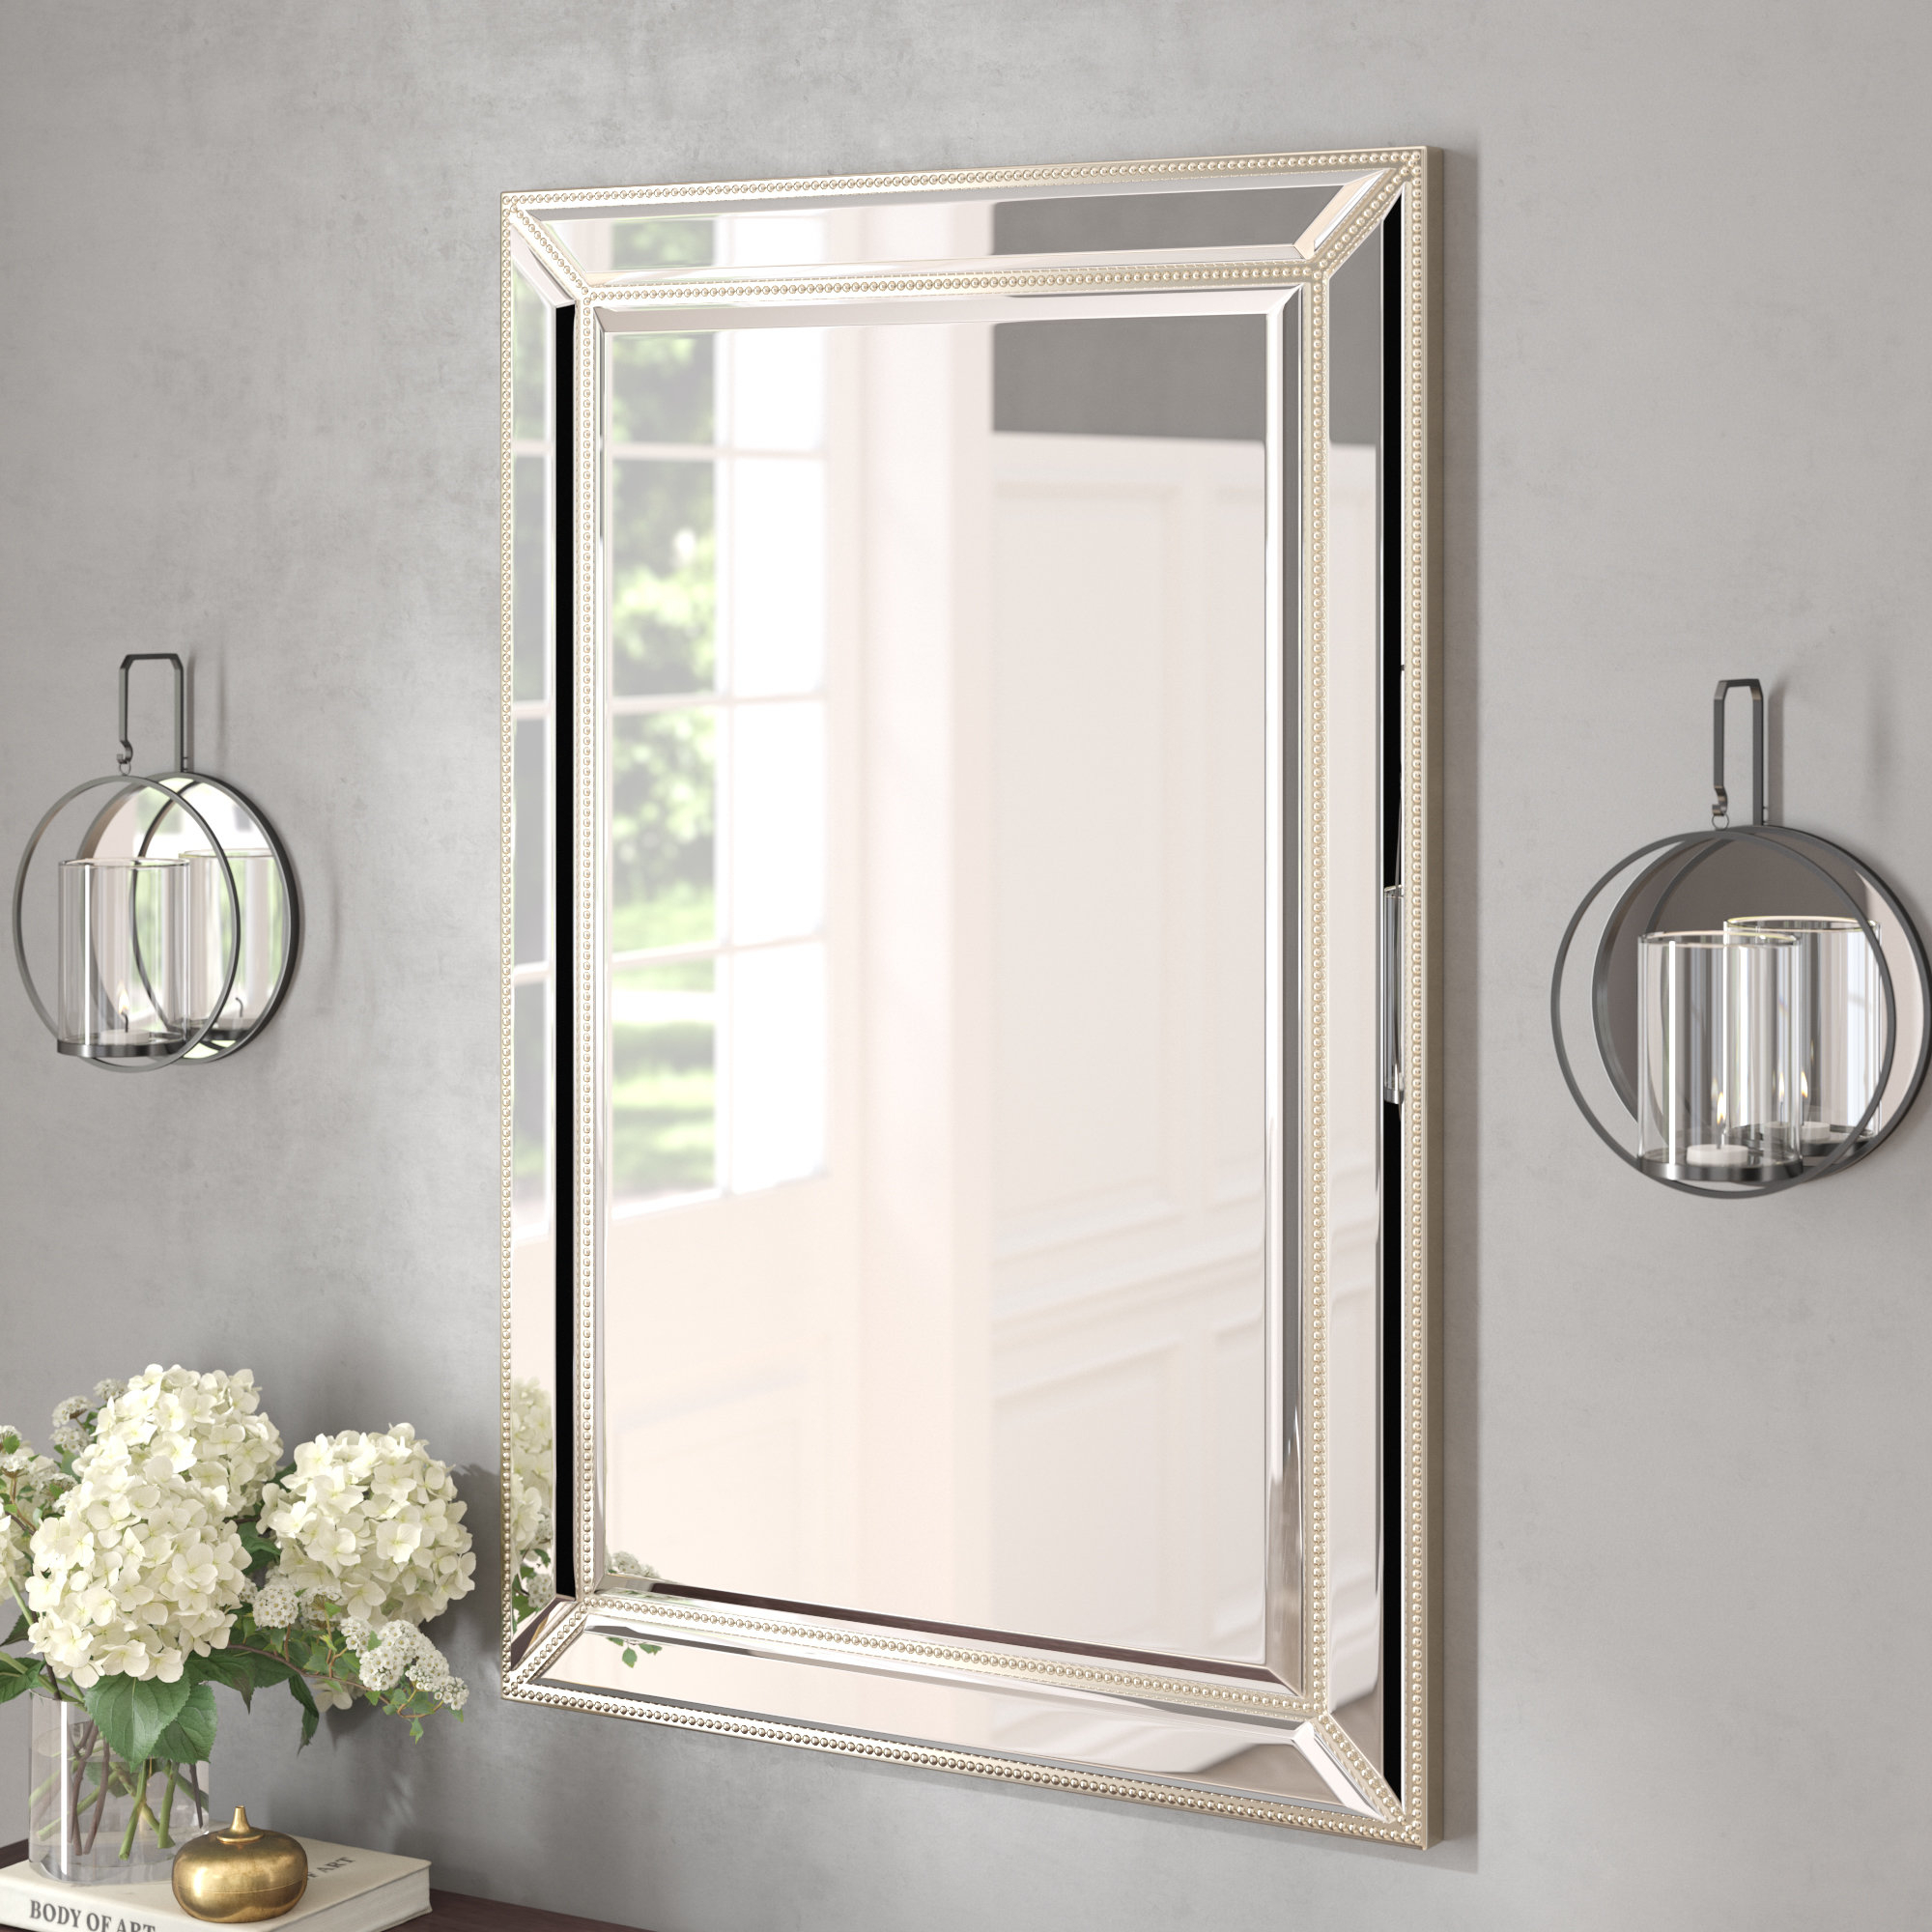 Villa Traditional Beveled Accent Mirror Regarding Willacoochee Traditional Beveled Accent Mirrors (Image 17 of 20)